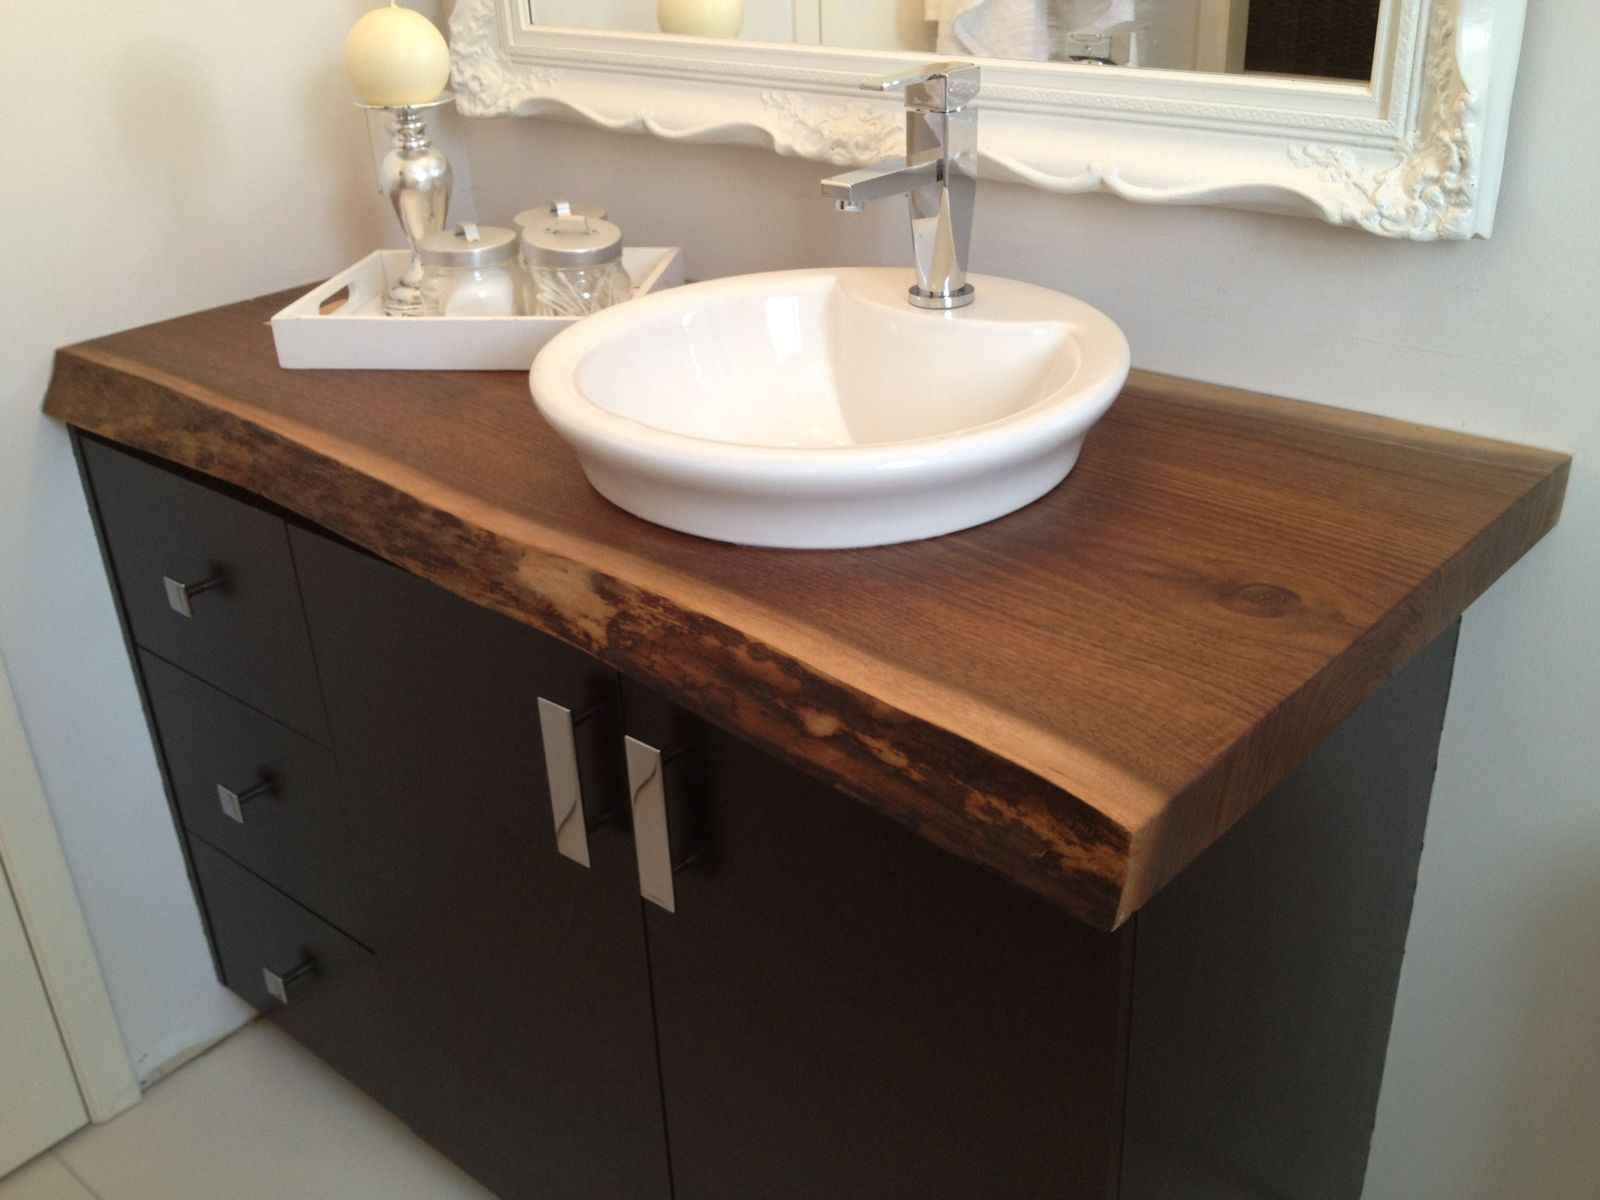 Http Www Custommade Com Live Edge Black Walnut Bathroom Countertop By Boisdesign